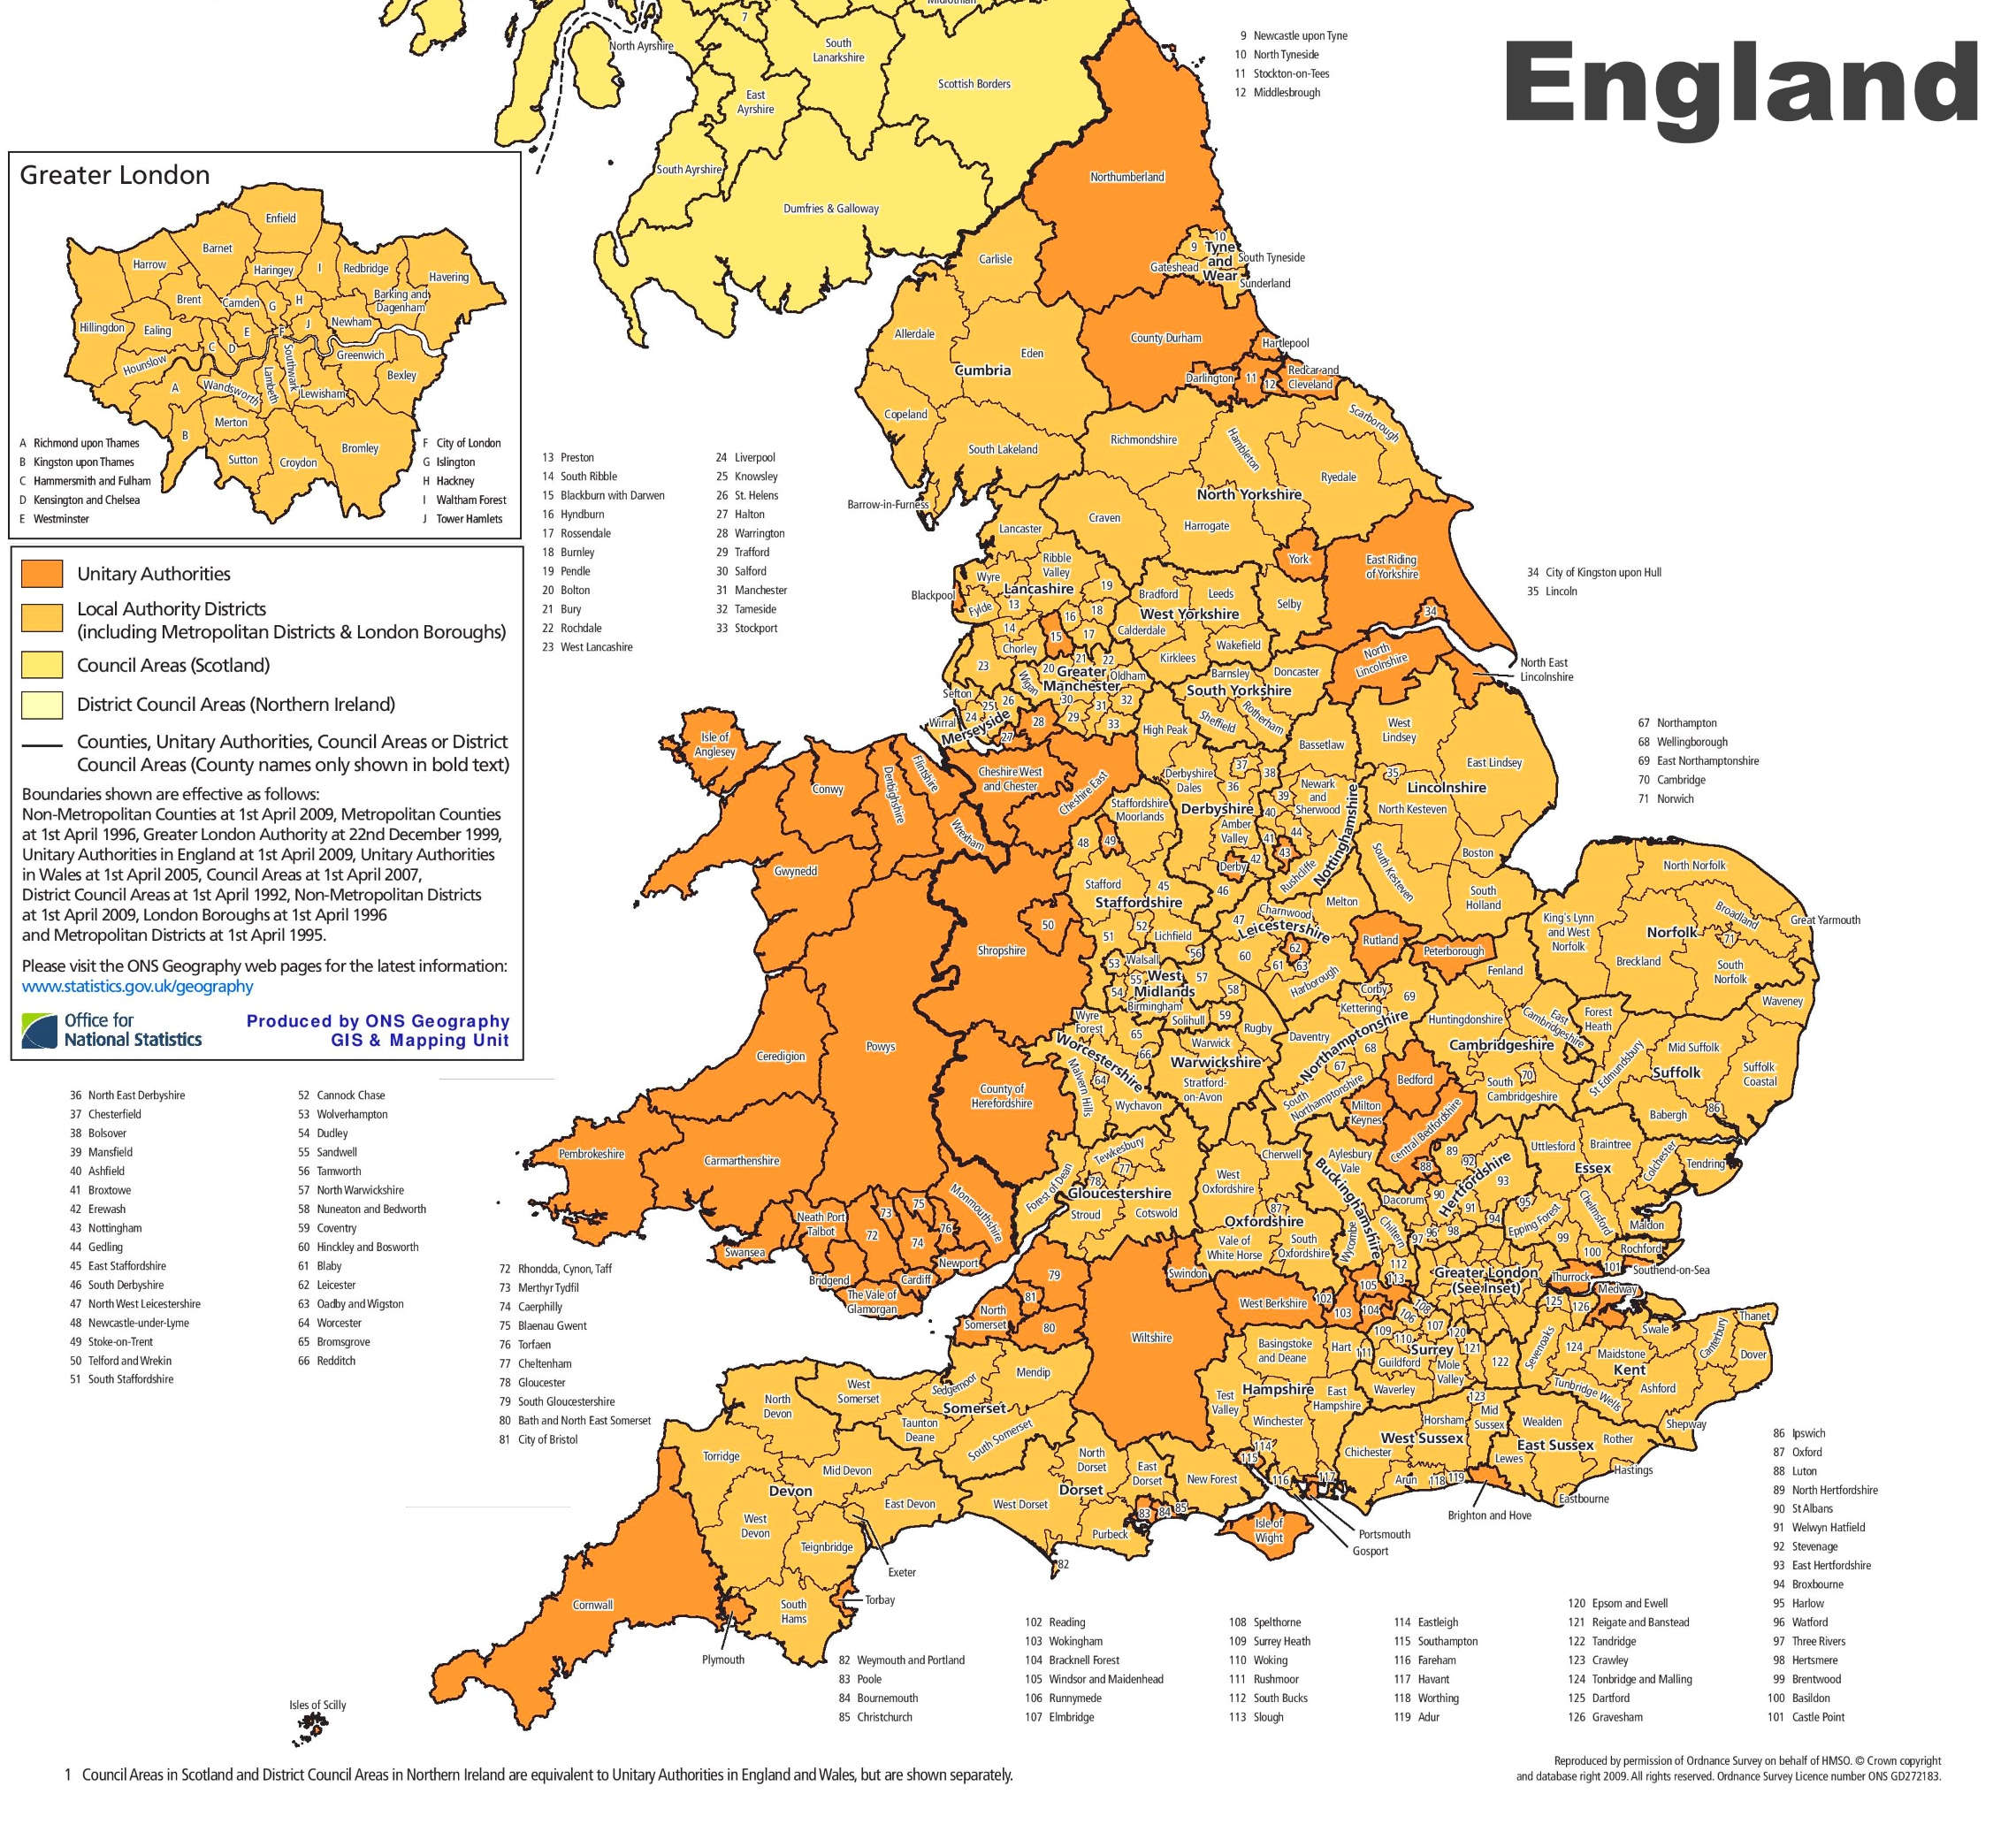 Administrative divisions map of England